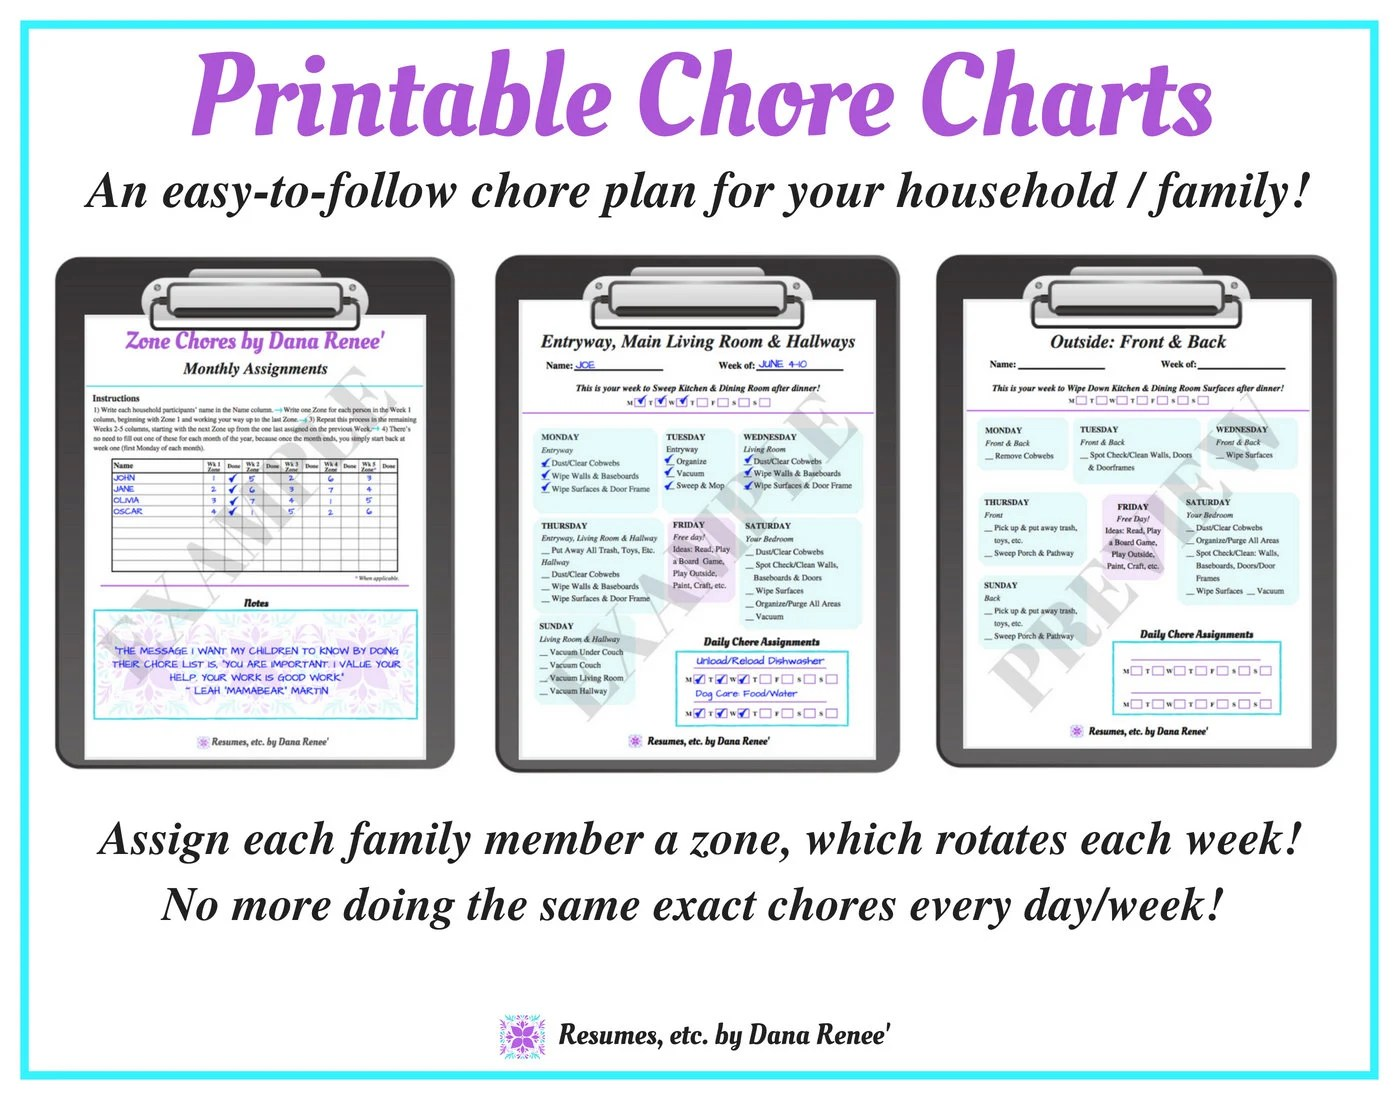 Weekly printable chore charts zone schedule parents children planning organization household chores list cleaning also etsy rh